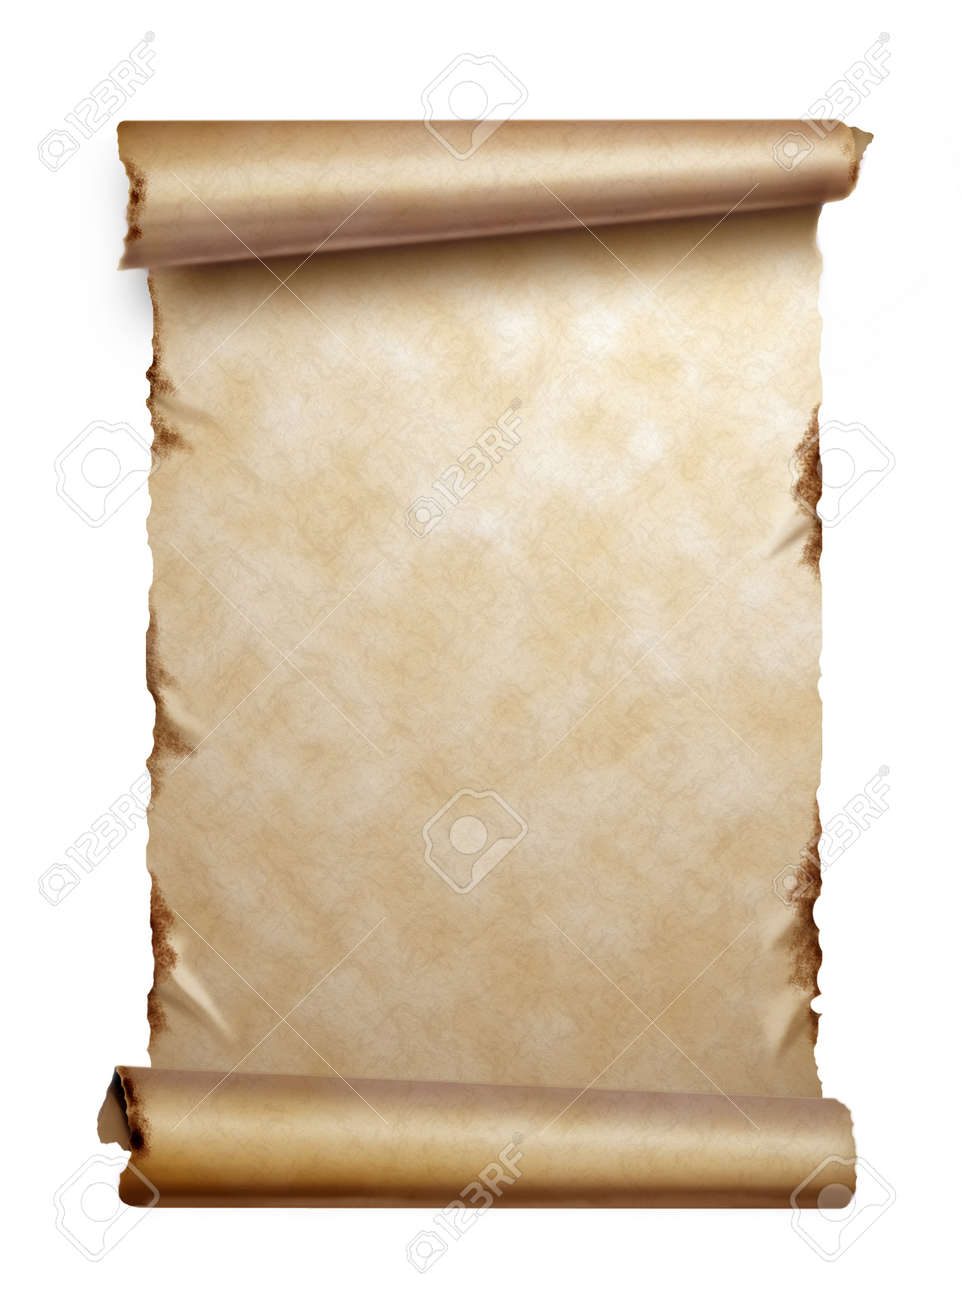 Scroll of old paper with curled edges isolated on white Stock Photo - 11903277